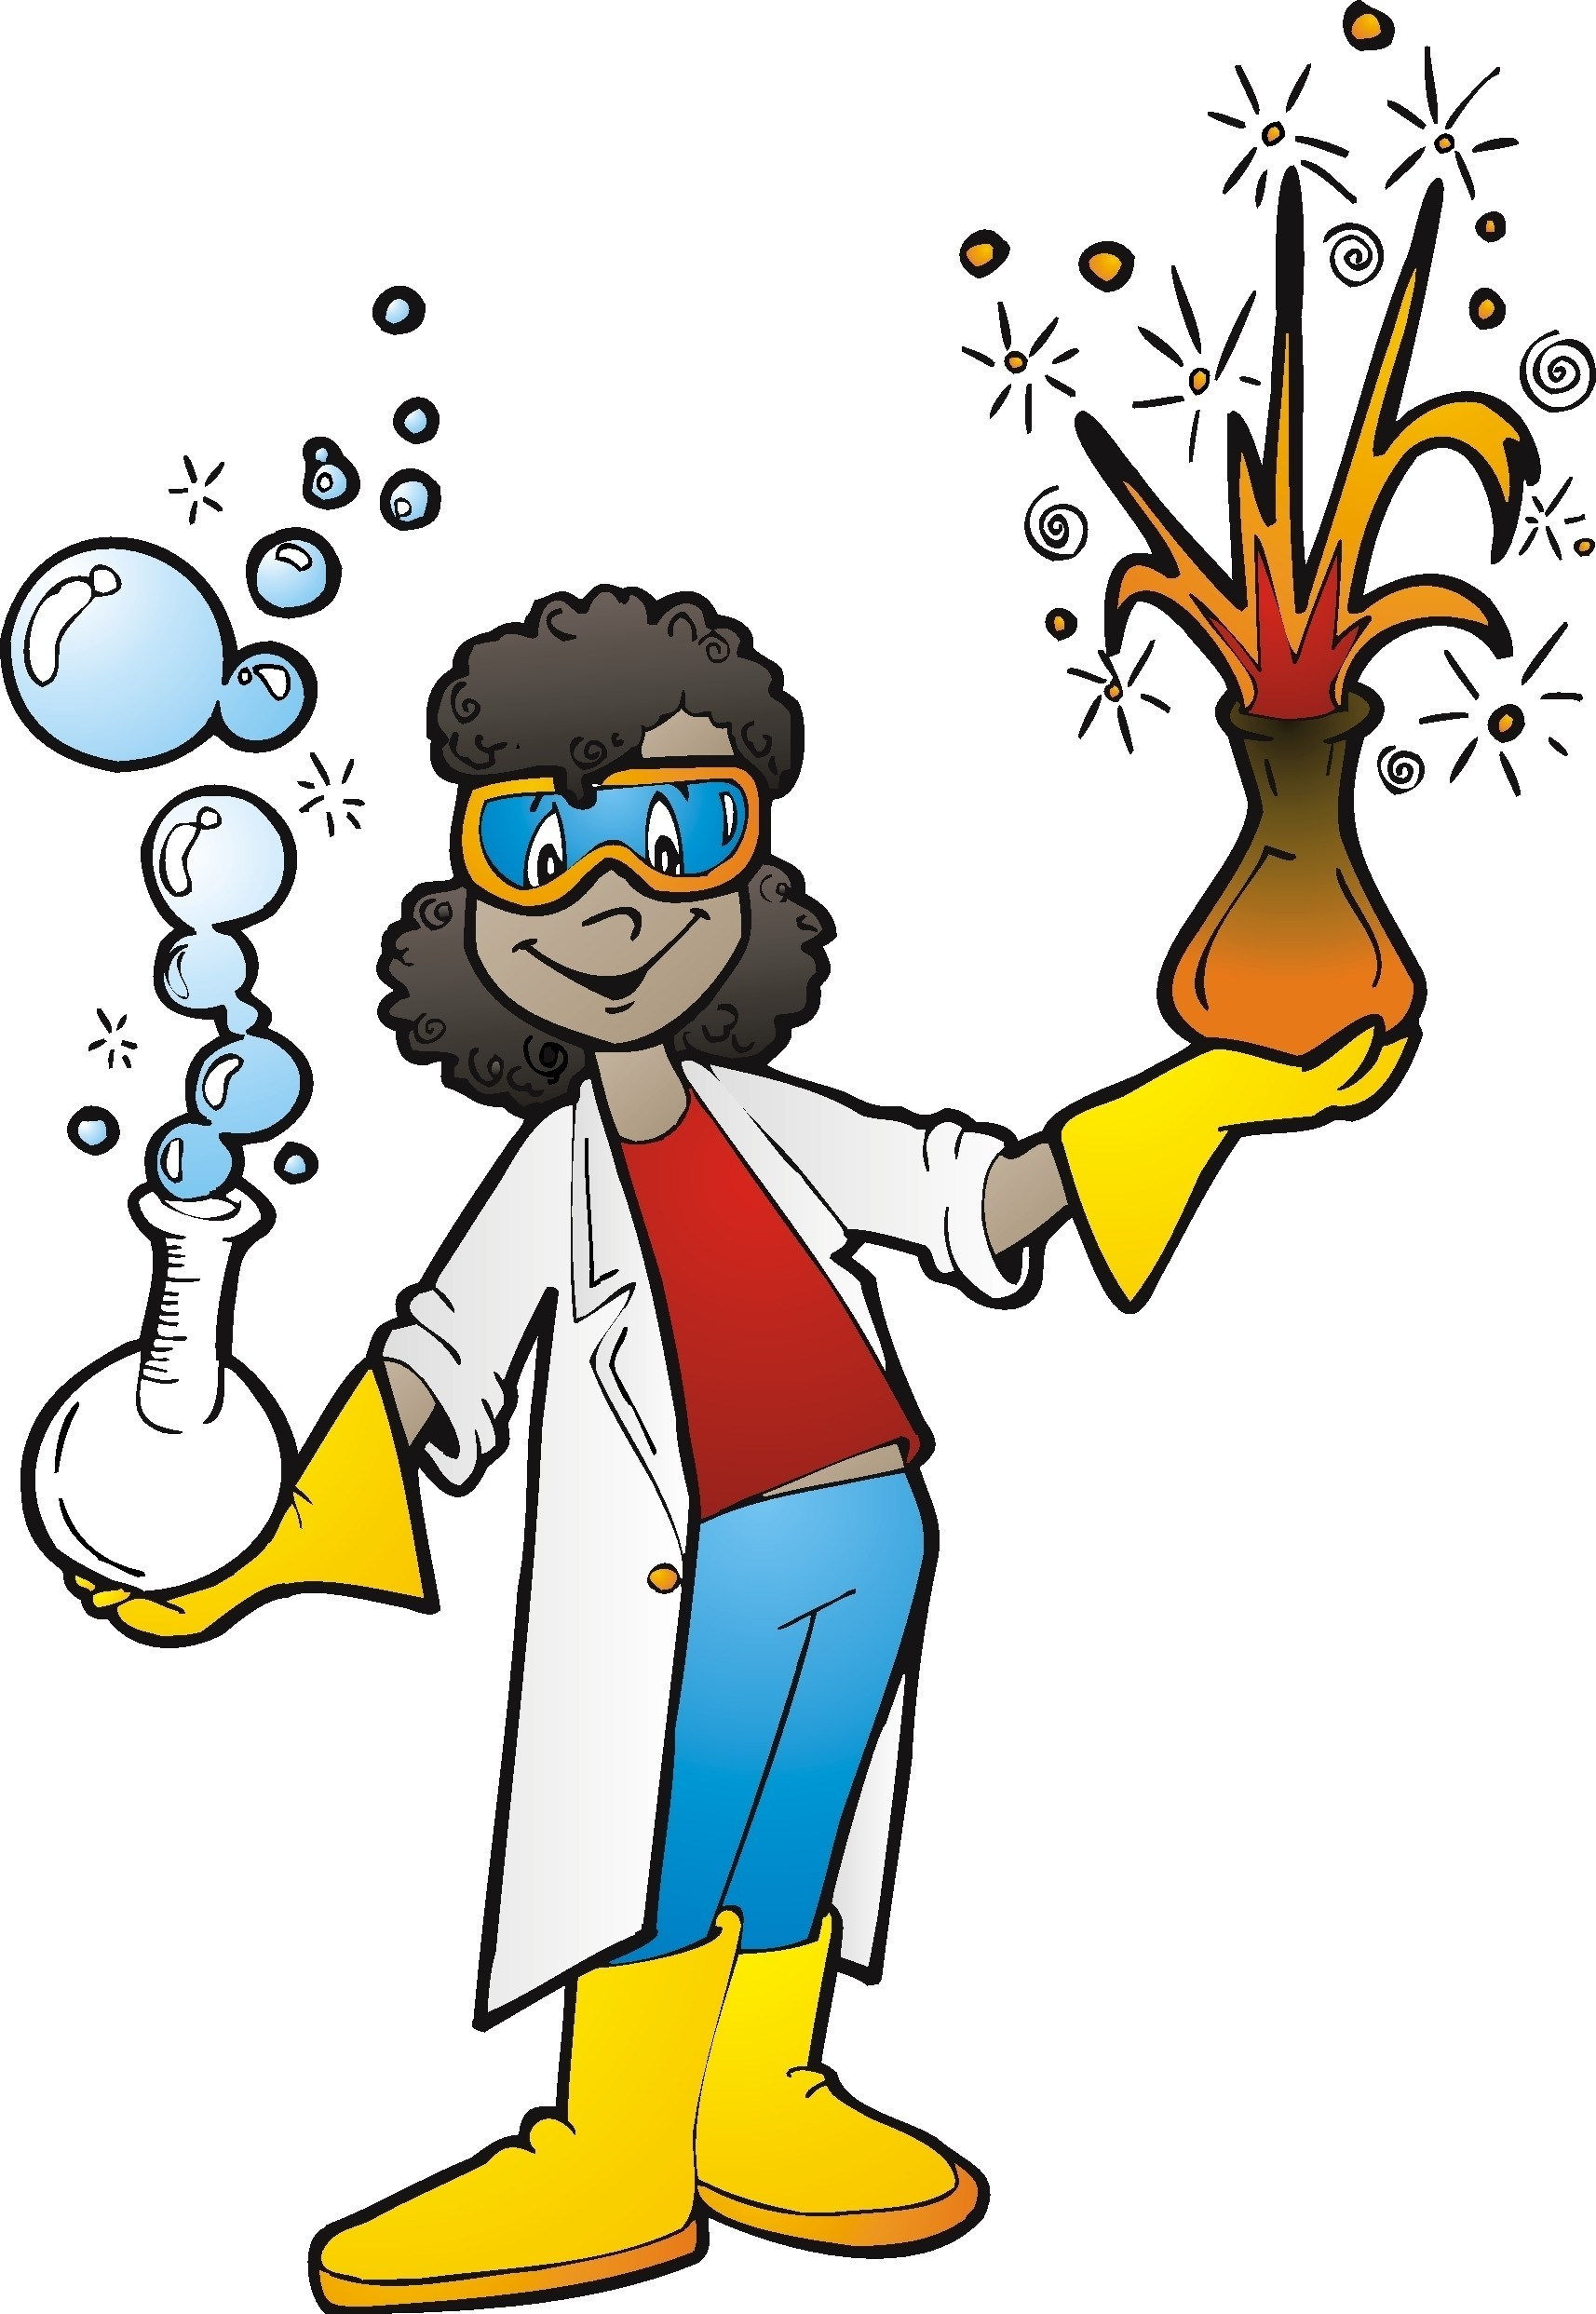 Transparent science clipart usbdata jpg